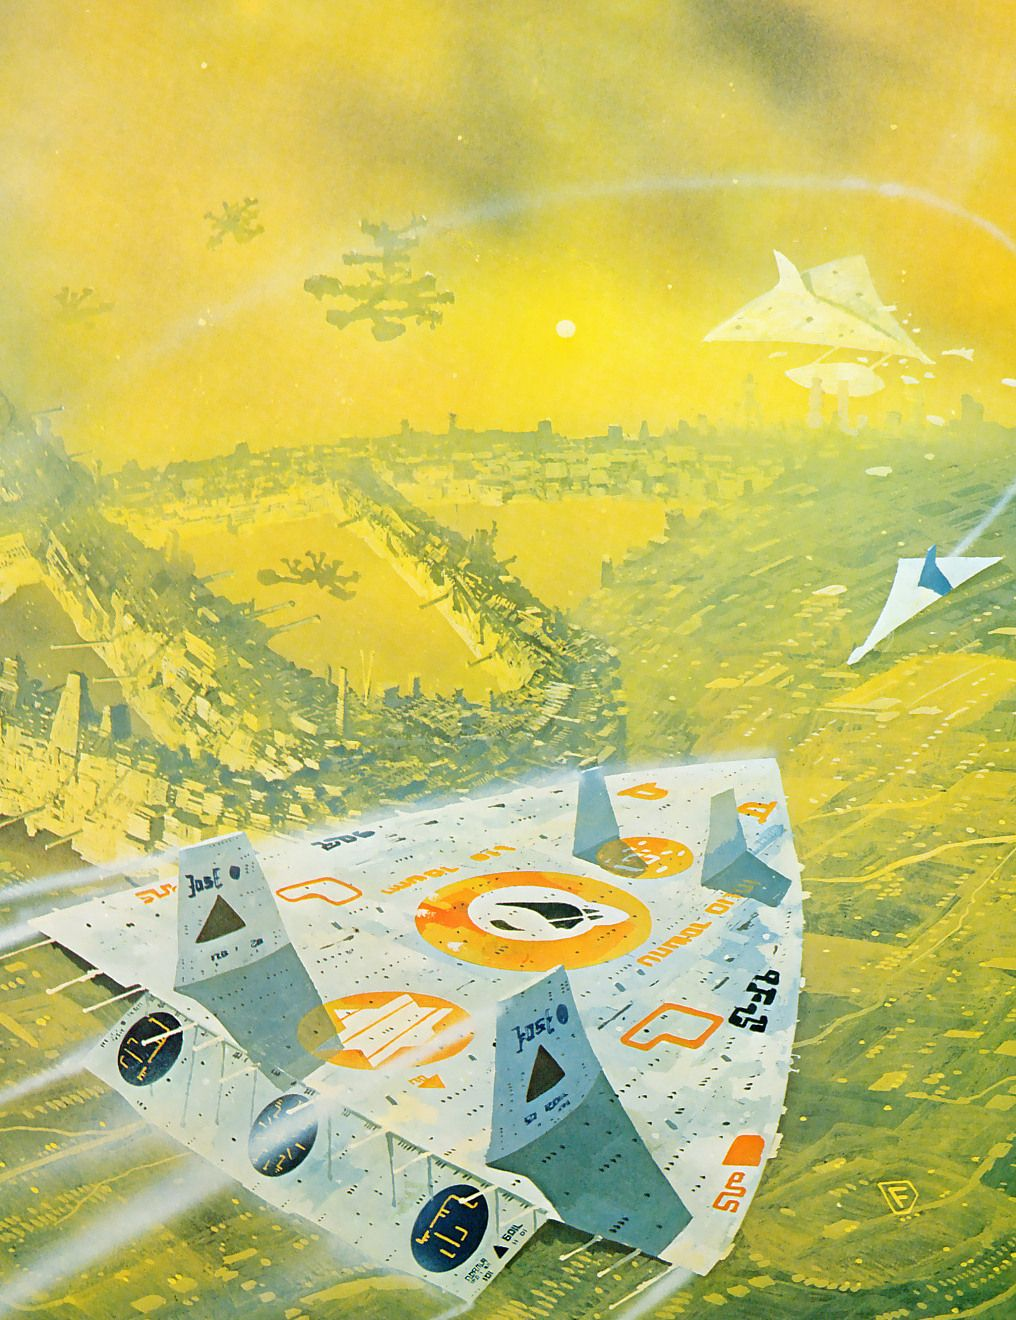 chris foss - the space hounds of ipc